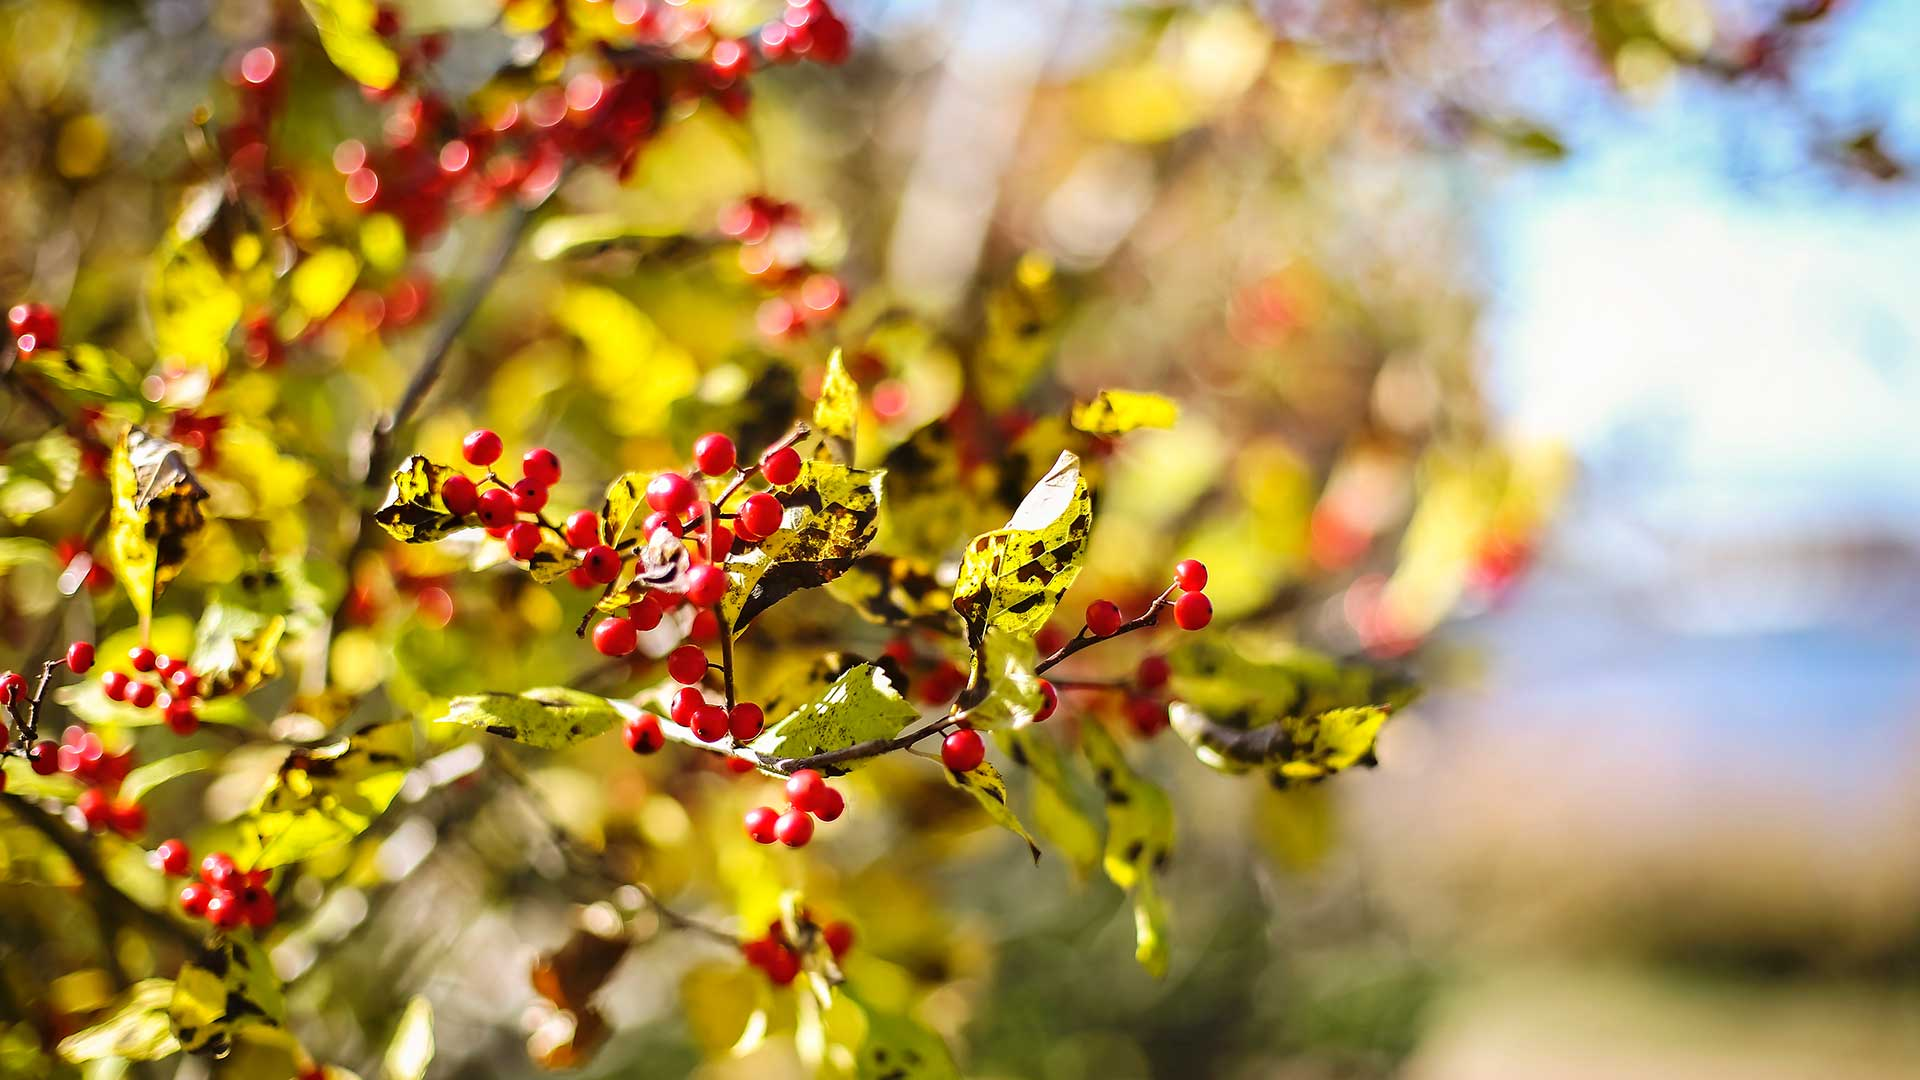 smcm-abstract-leaves-berries-river